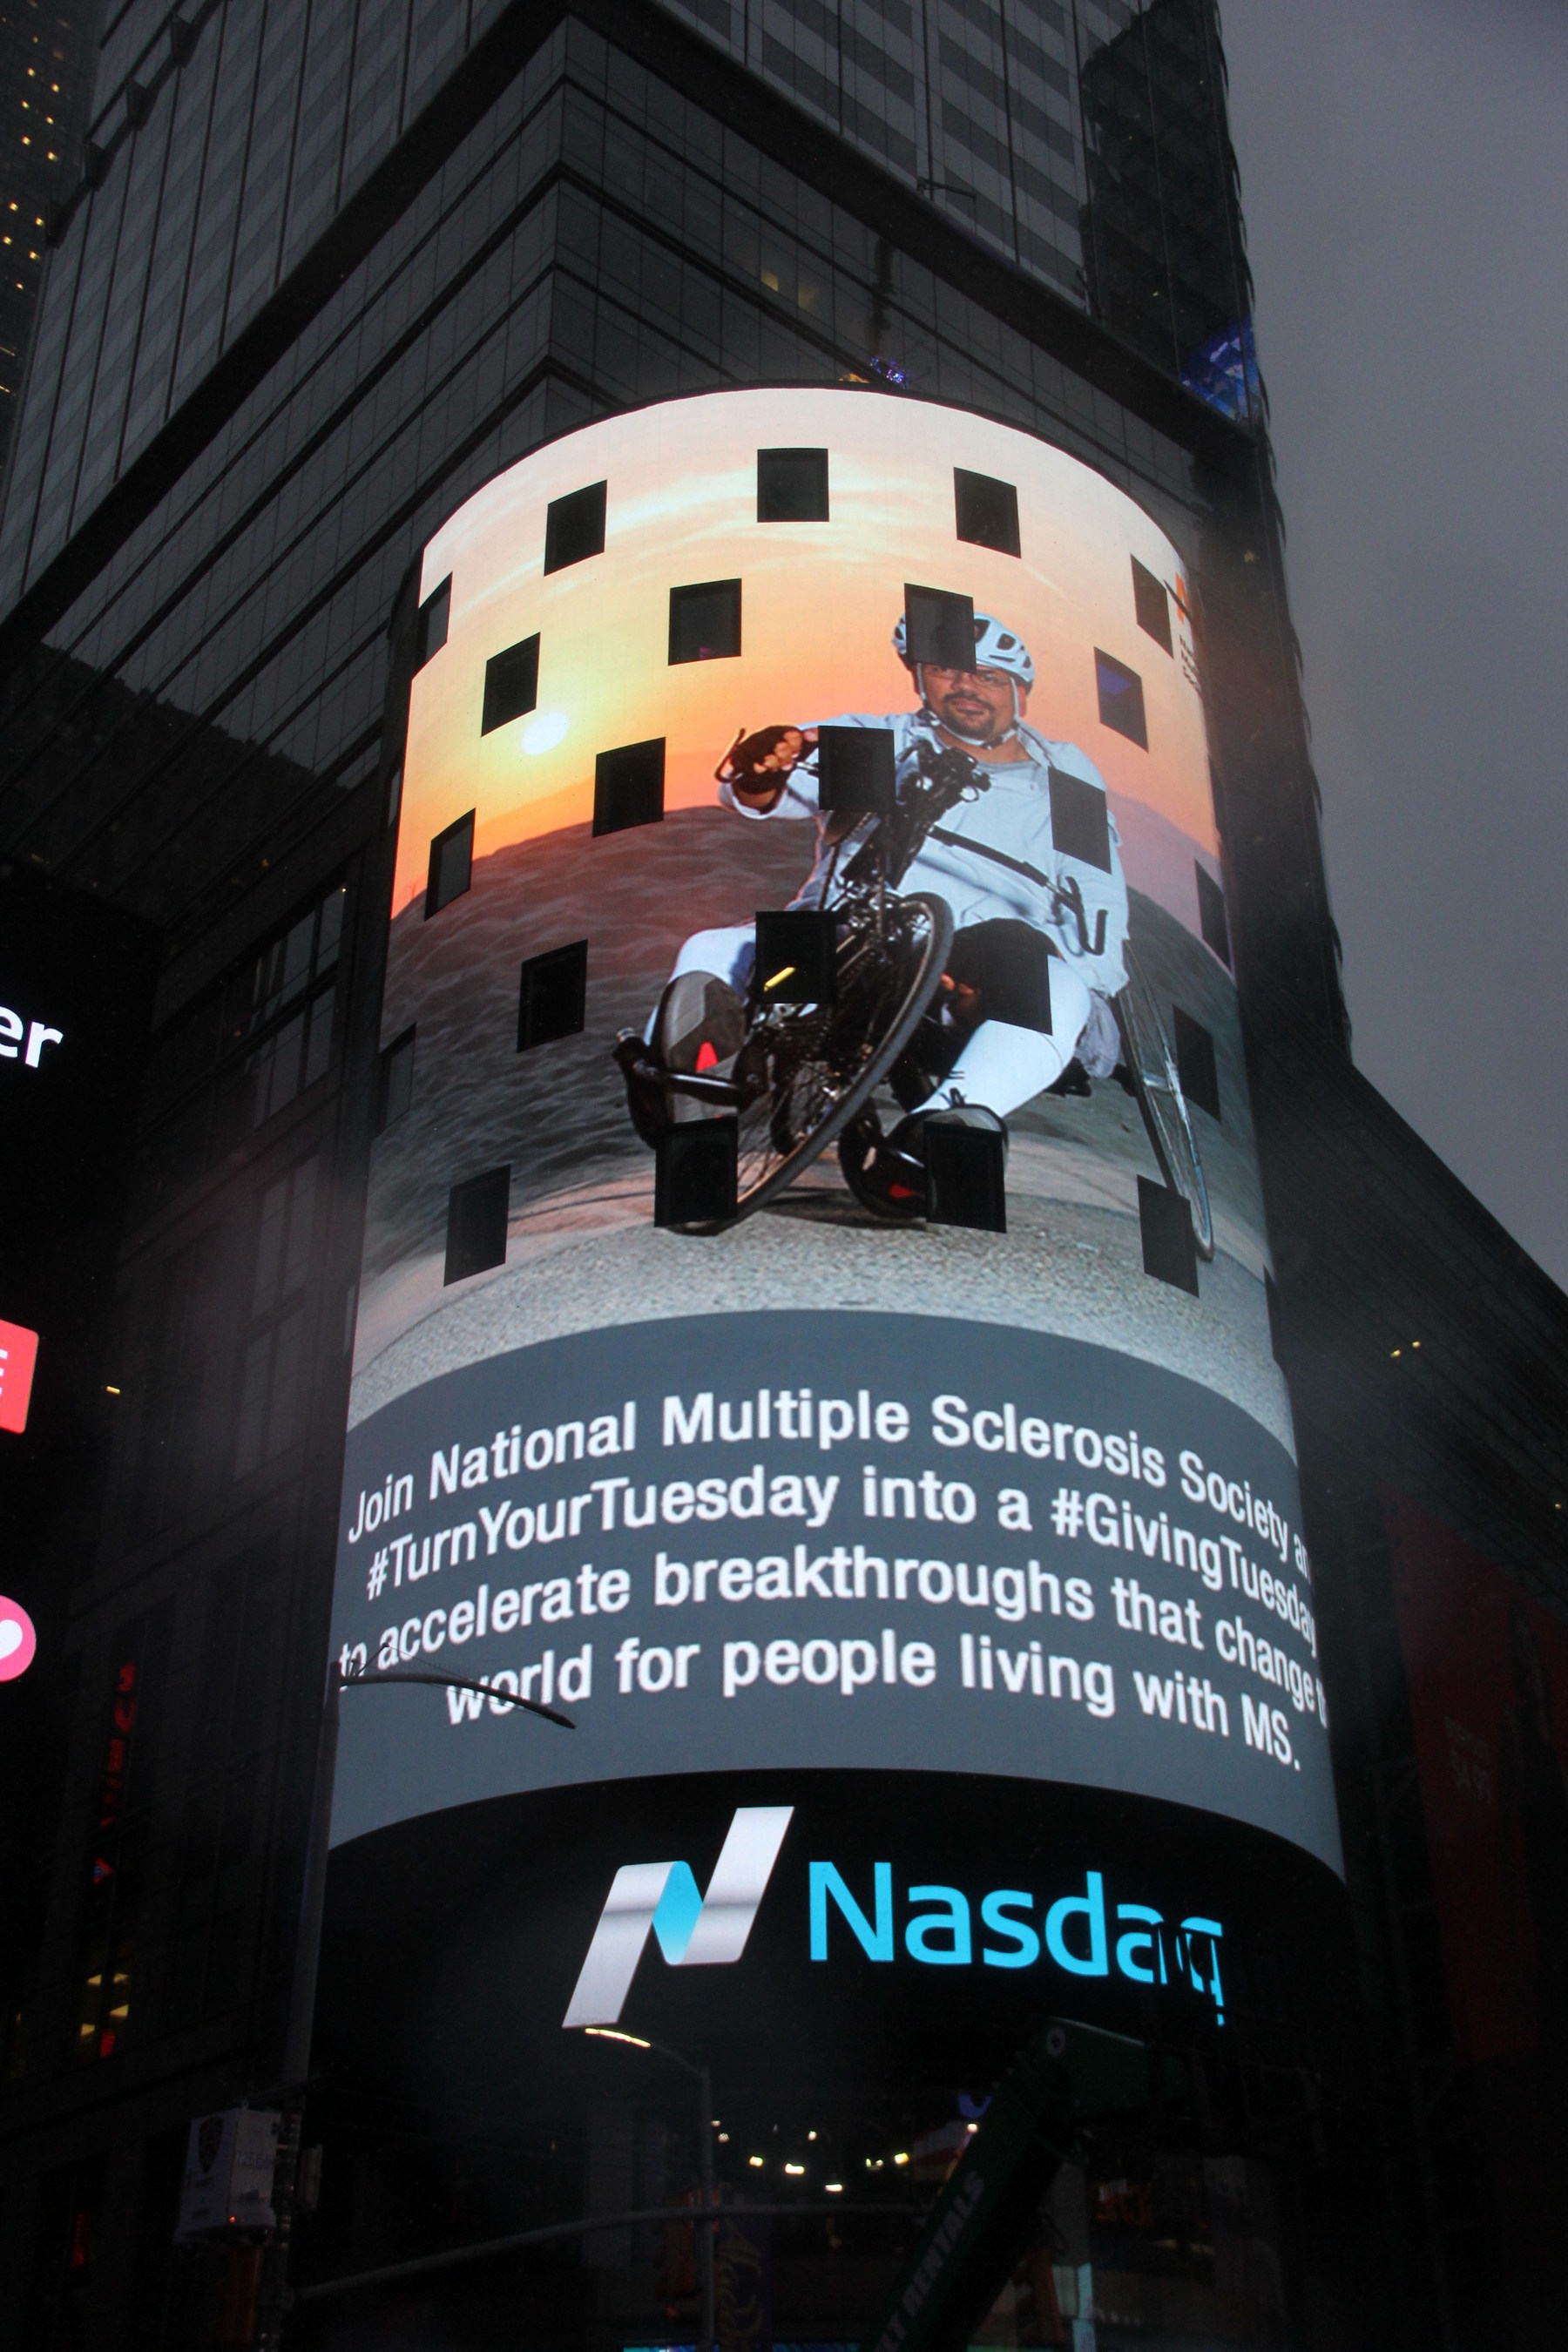 Blackbaud is takes over the Nasdaq tower at Times Square to promote what its customers are doing for #GivingTuesday. Join National Multiple Sclerosis Society this #GivingTuesday to accelerate breakthroughs that change the world for people living with MS.